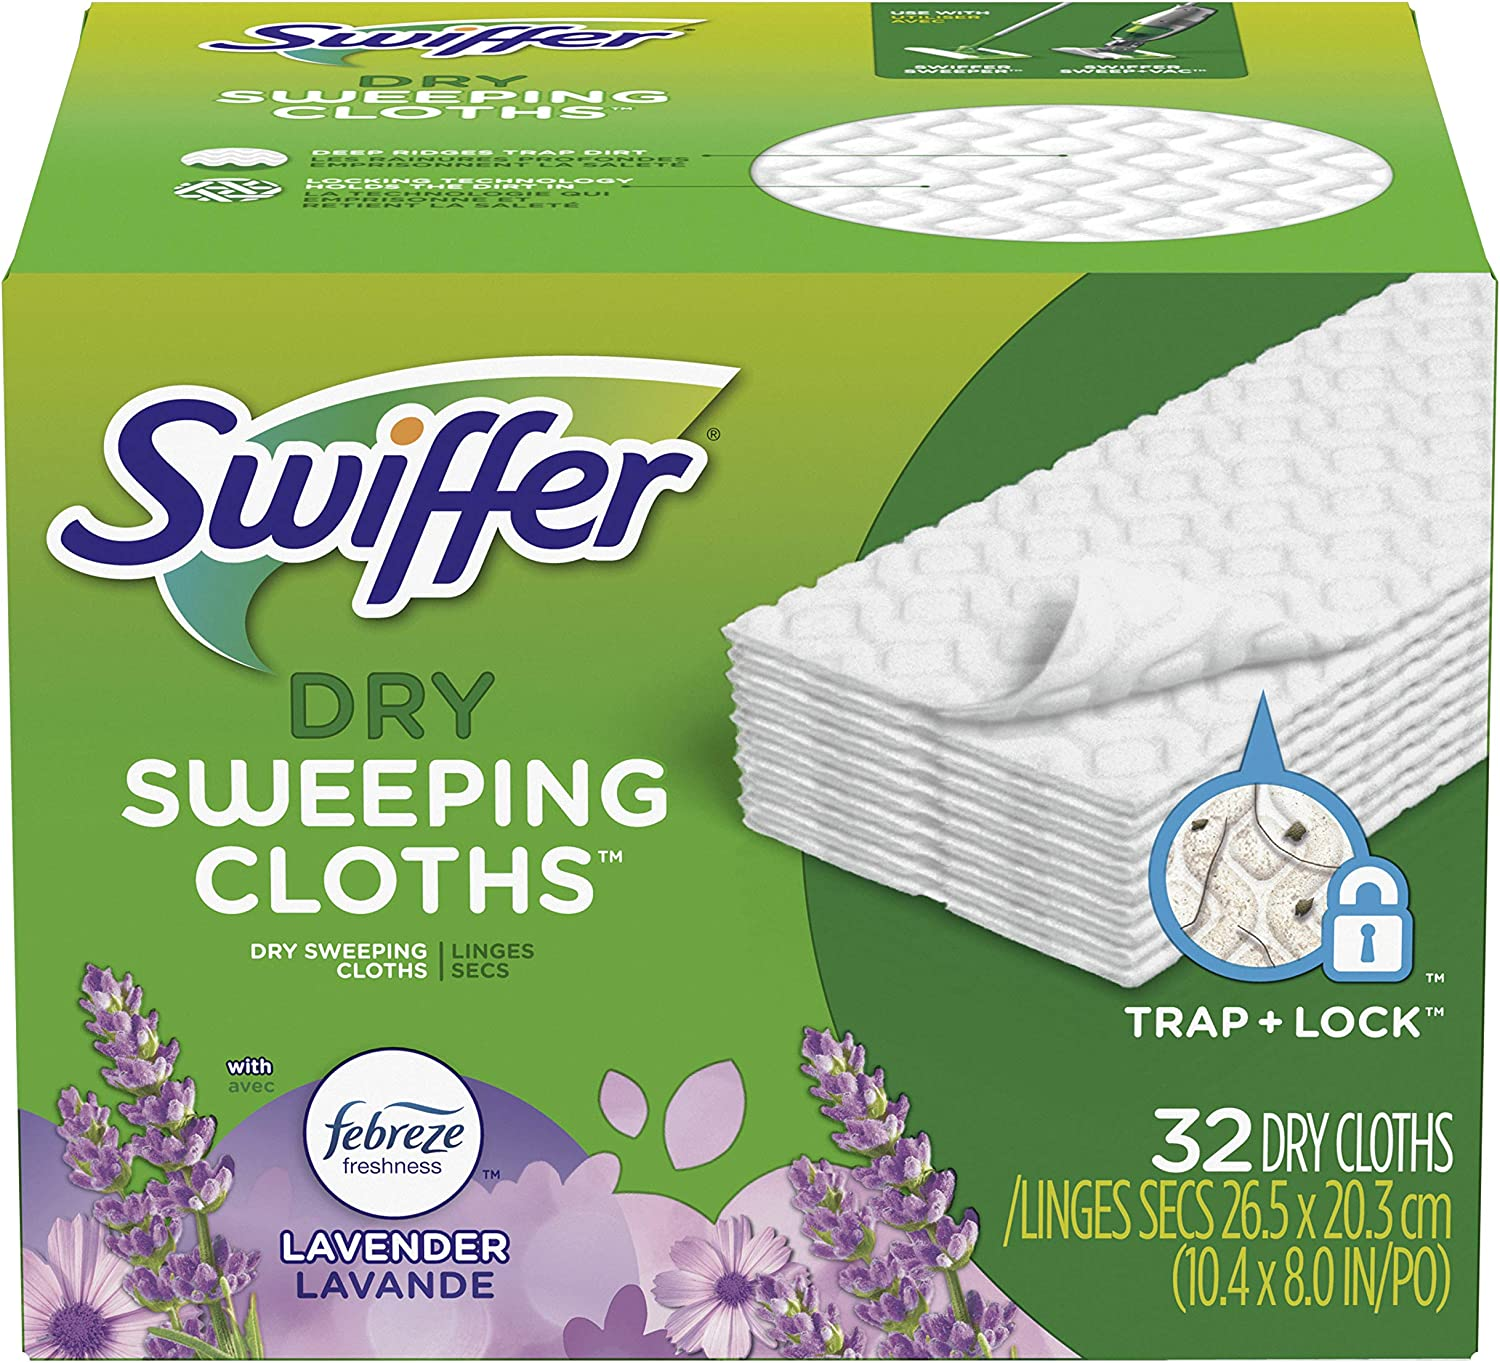 Translated Swiffer Sweeper Dry Sweeping Cloths Fresh Febreze Scent 2021 model Lavende